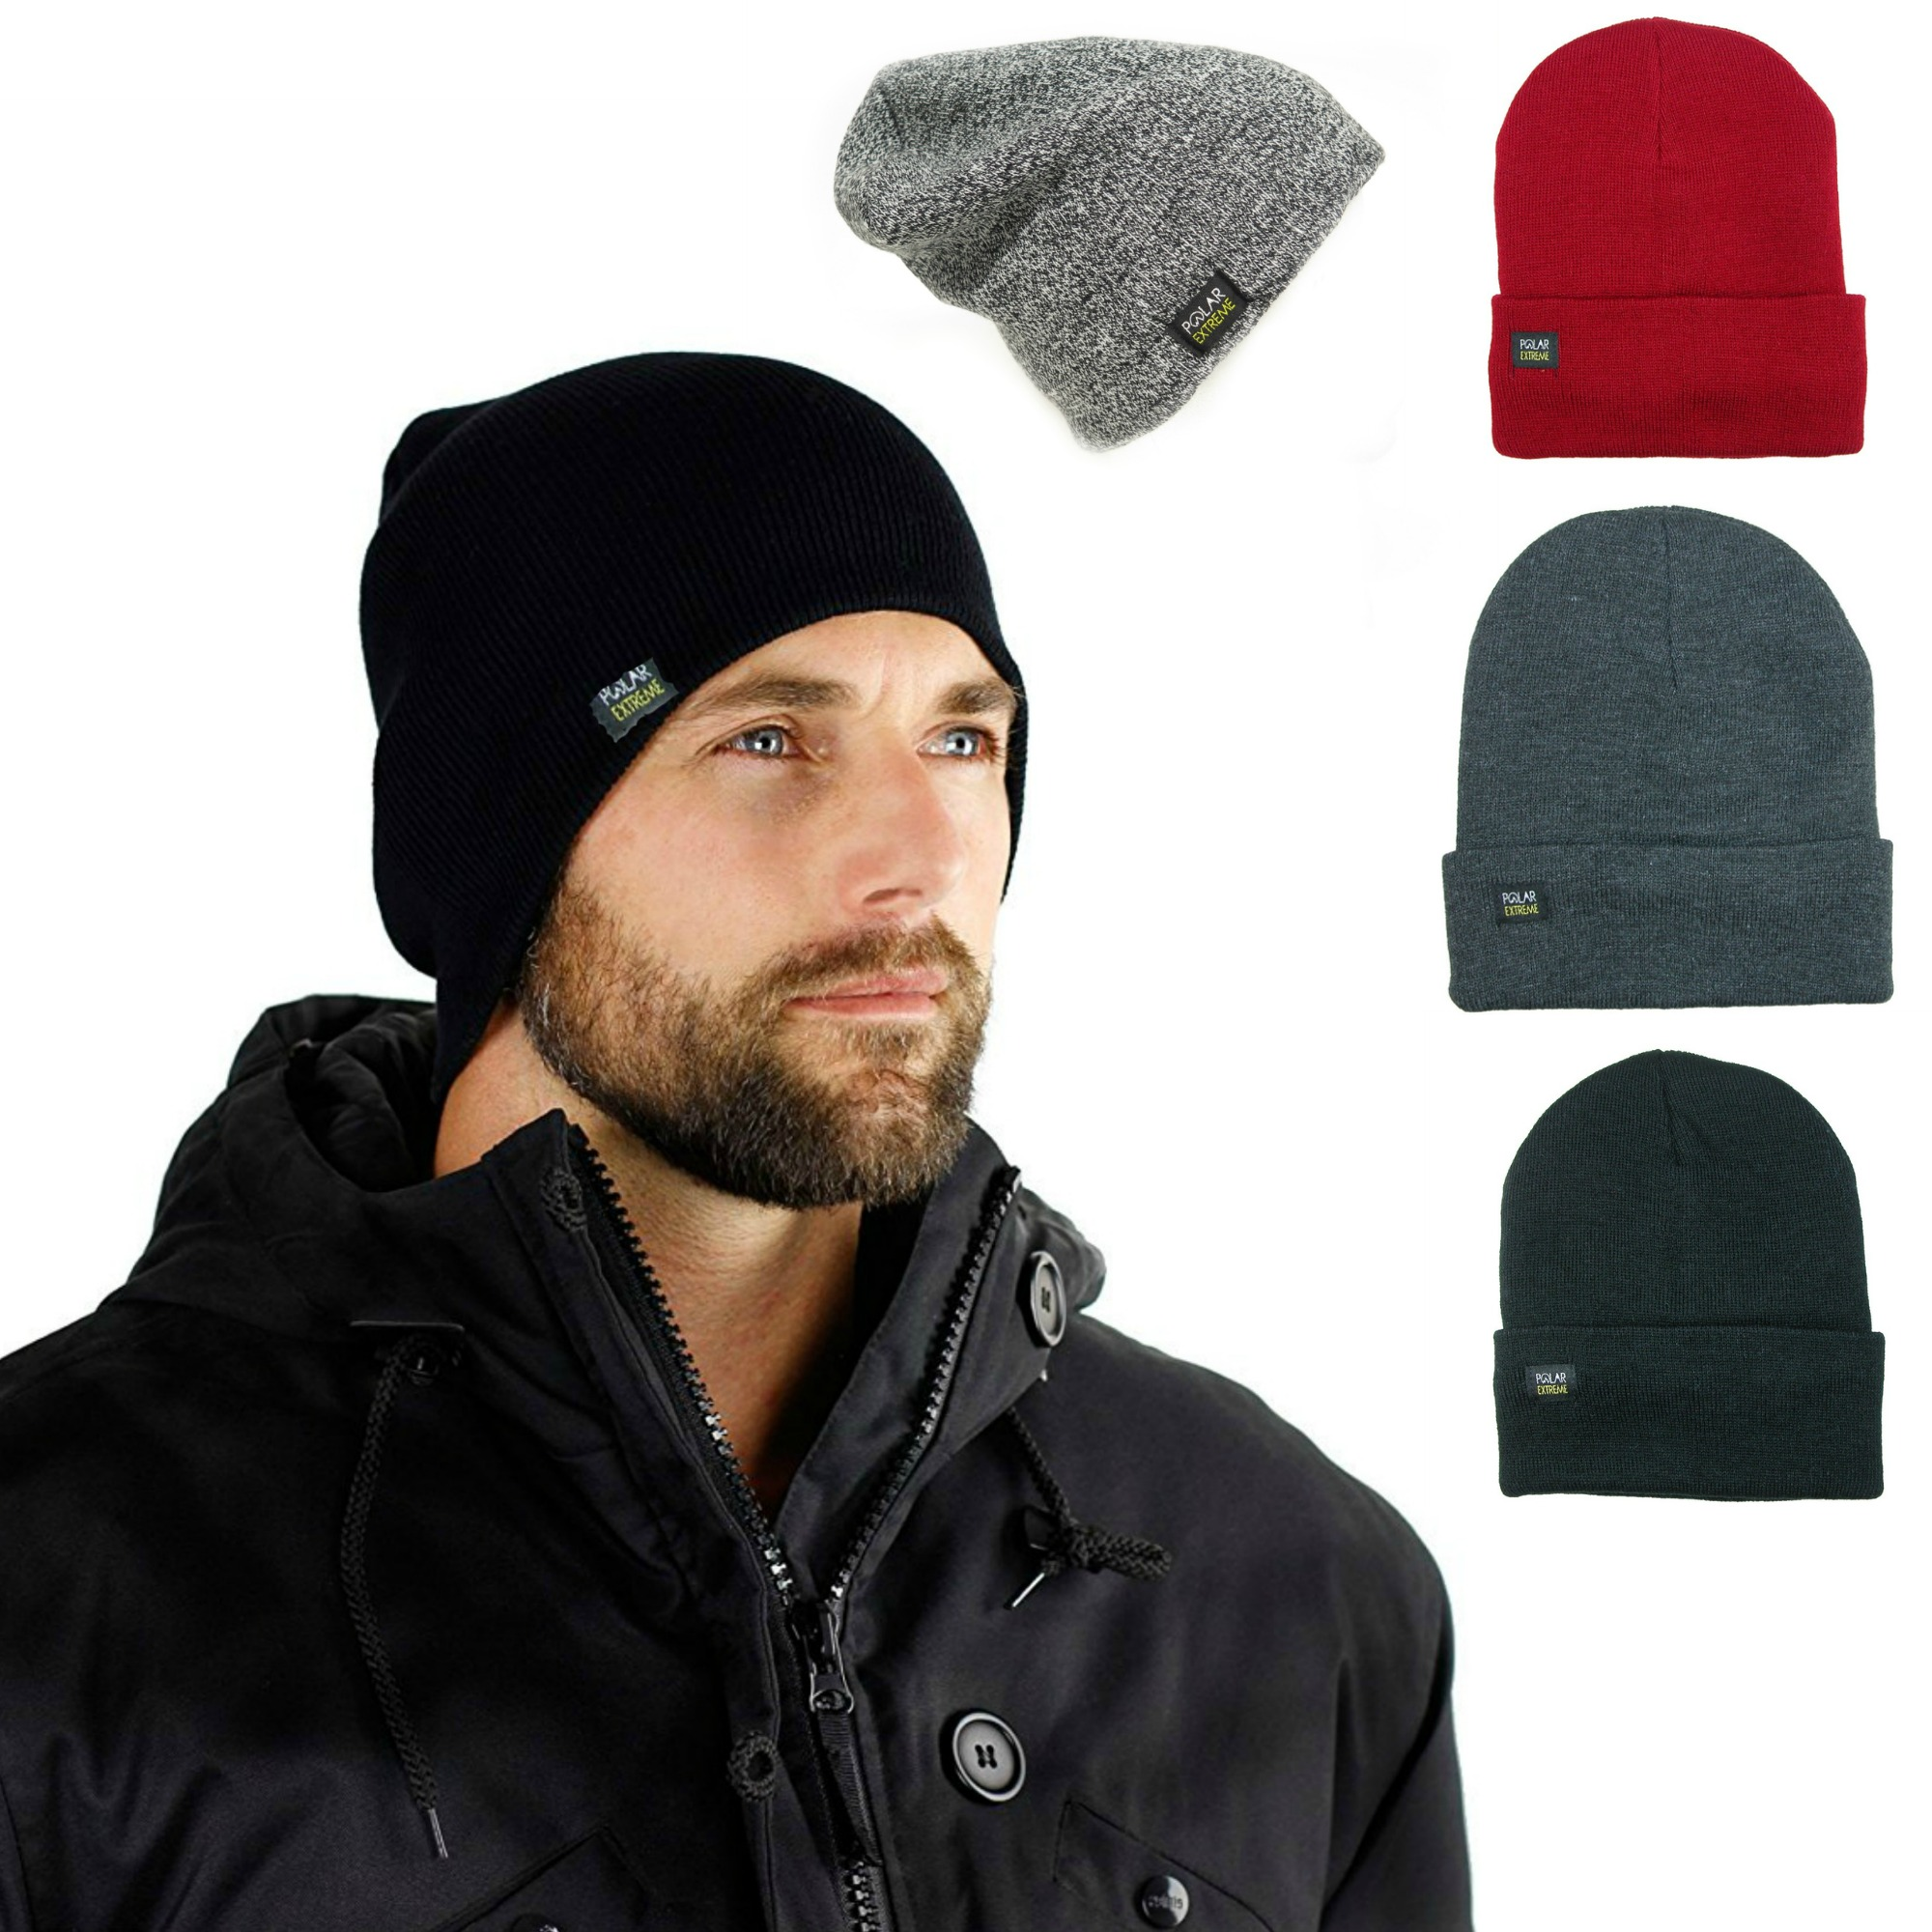 6dfba5adef710 Magg - Mens Insulated Thermal Fleece Lined Comfort Daily Soft Beanies Winter  Hats (Gray Beanie) - Walmart.com